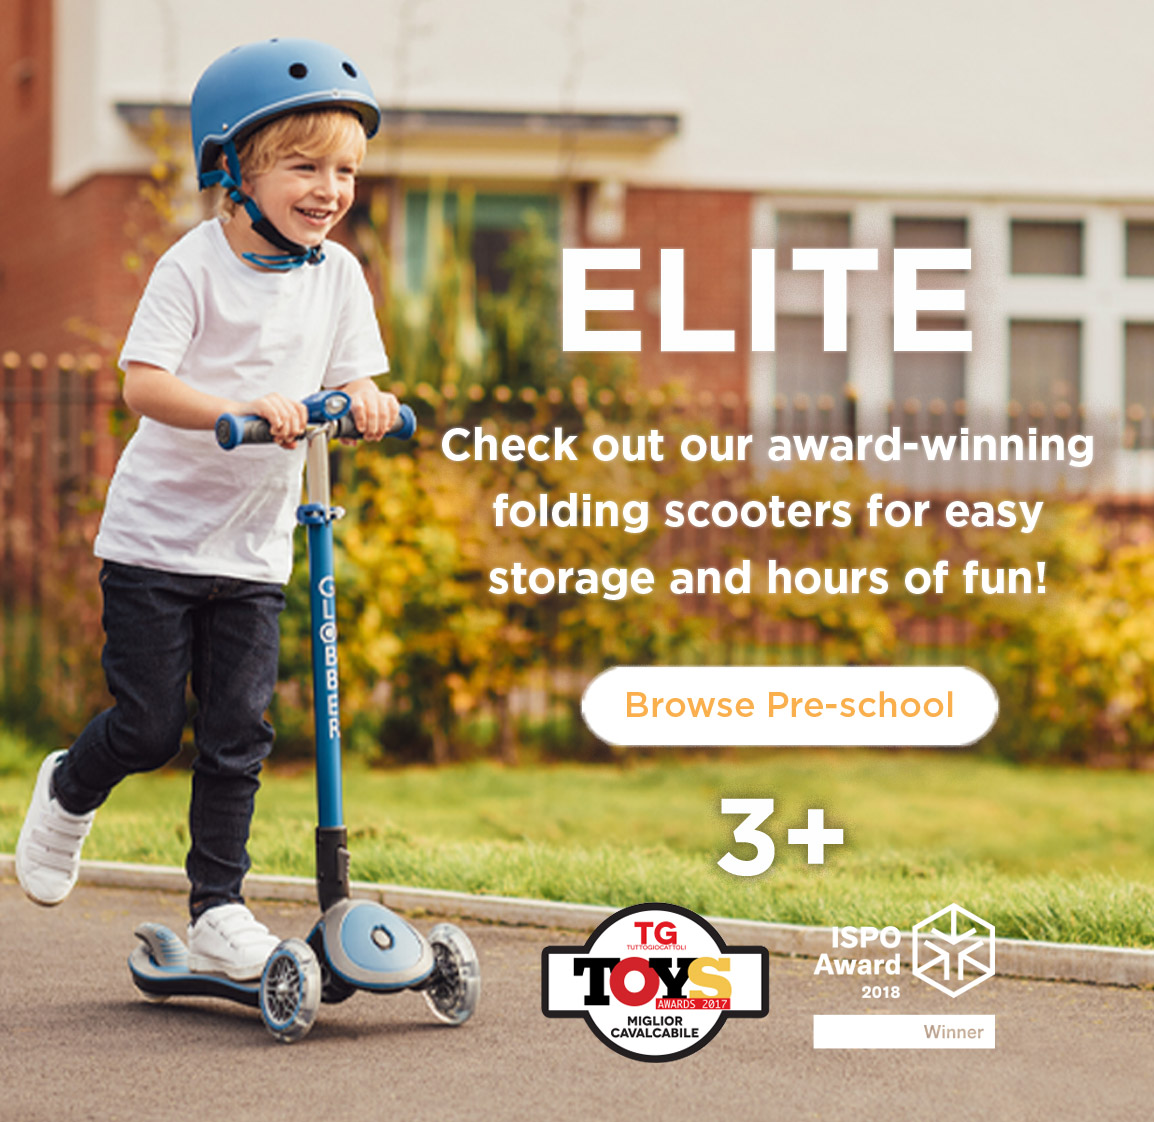 Globber-ELITE-award-winning-foldable-scooters-for-kids